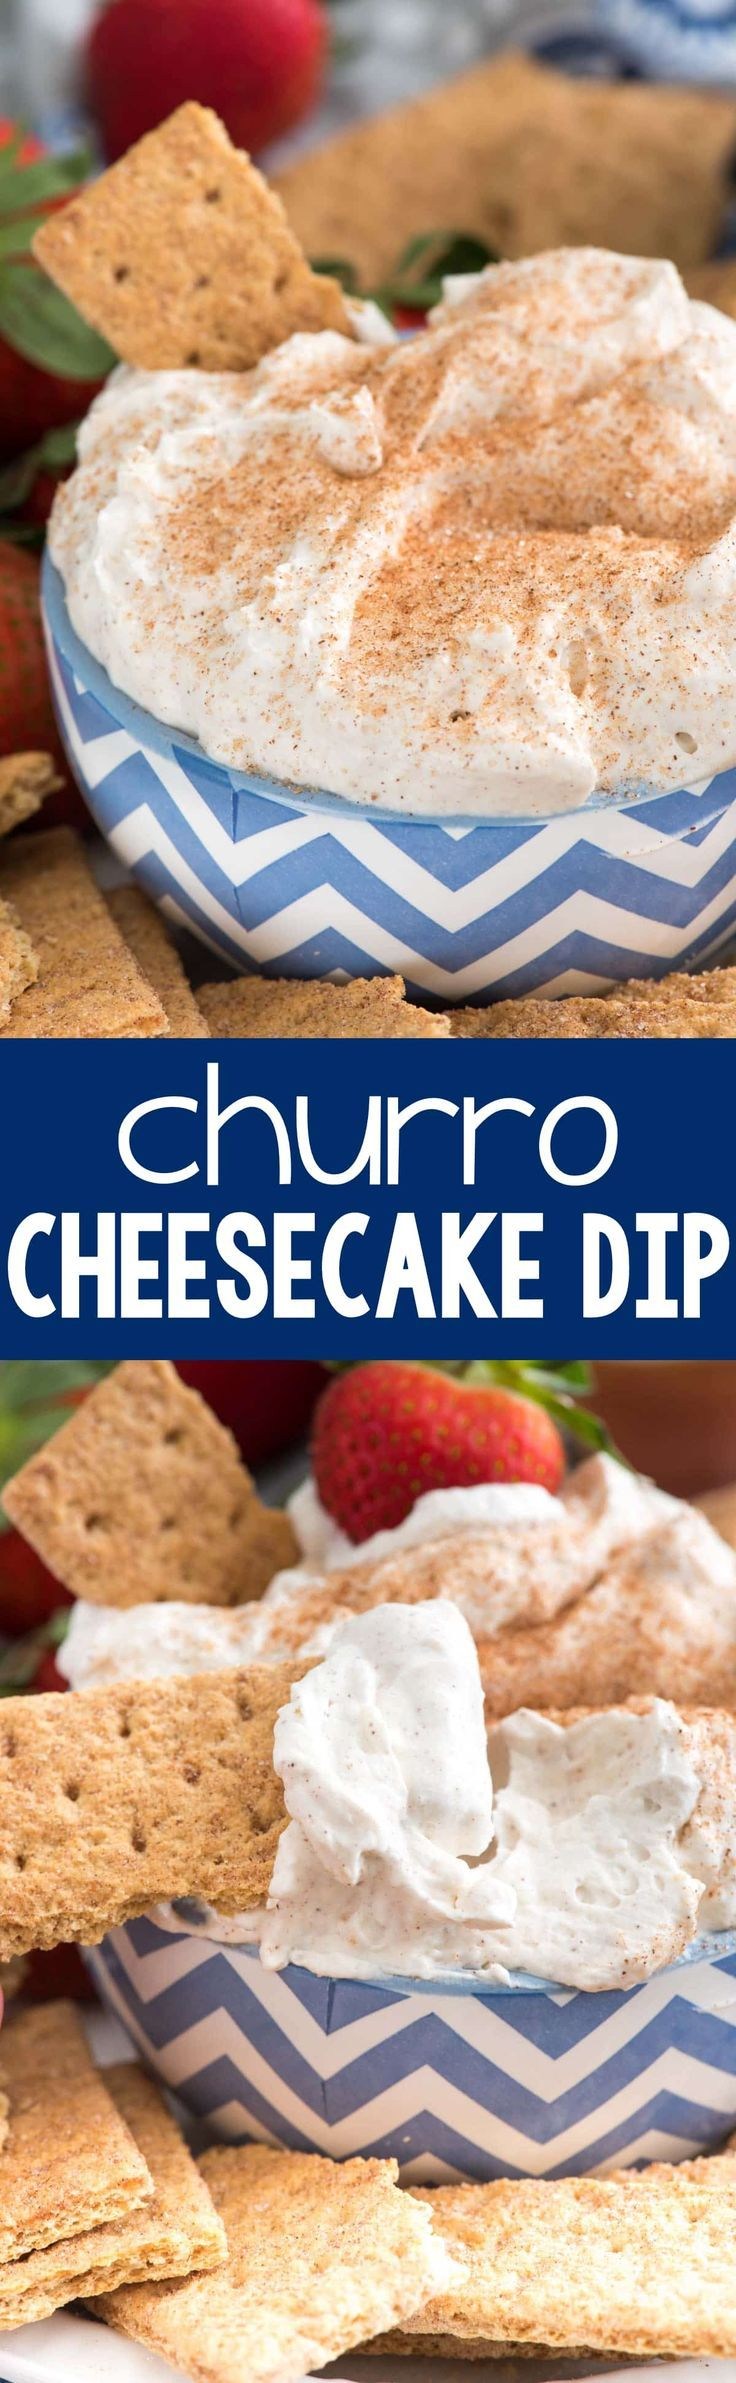 Churro Cheesecake Dip - an easy way to make no-bake cheesecake dip full of cinnamon sugar churro flavor! This is perfect for parties or an easy dessert; we loved it! (Bake Cheesecake Topping)